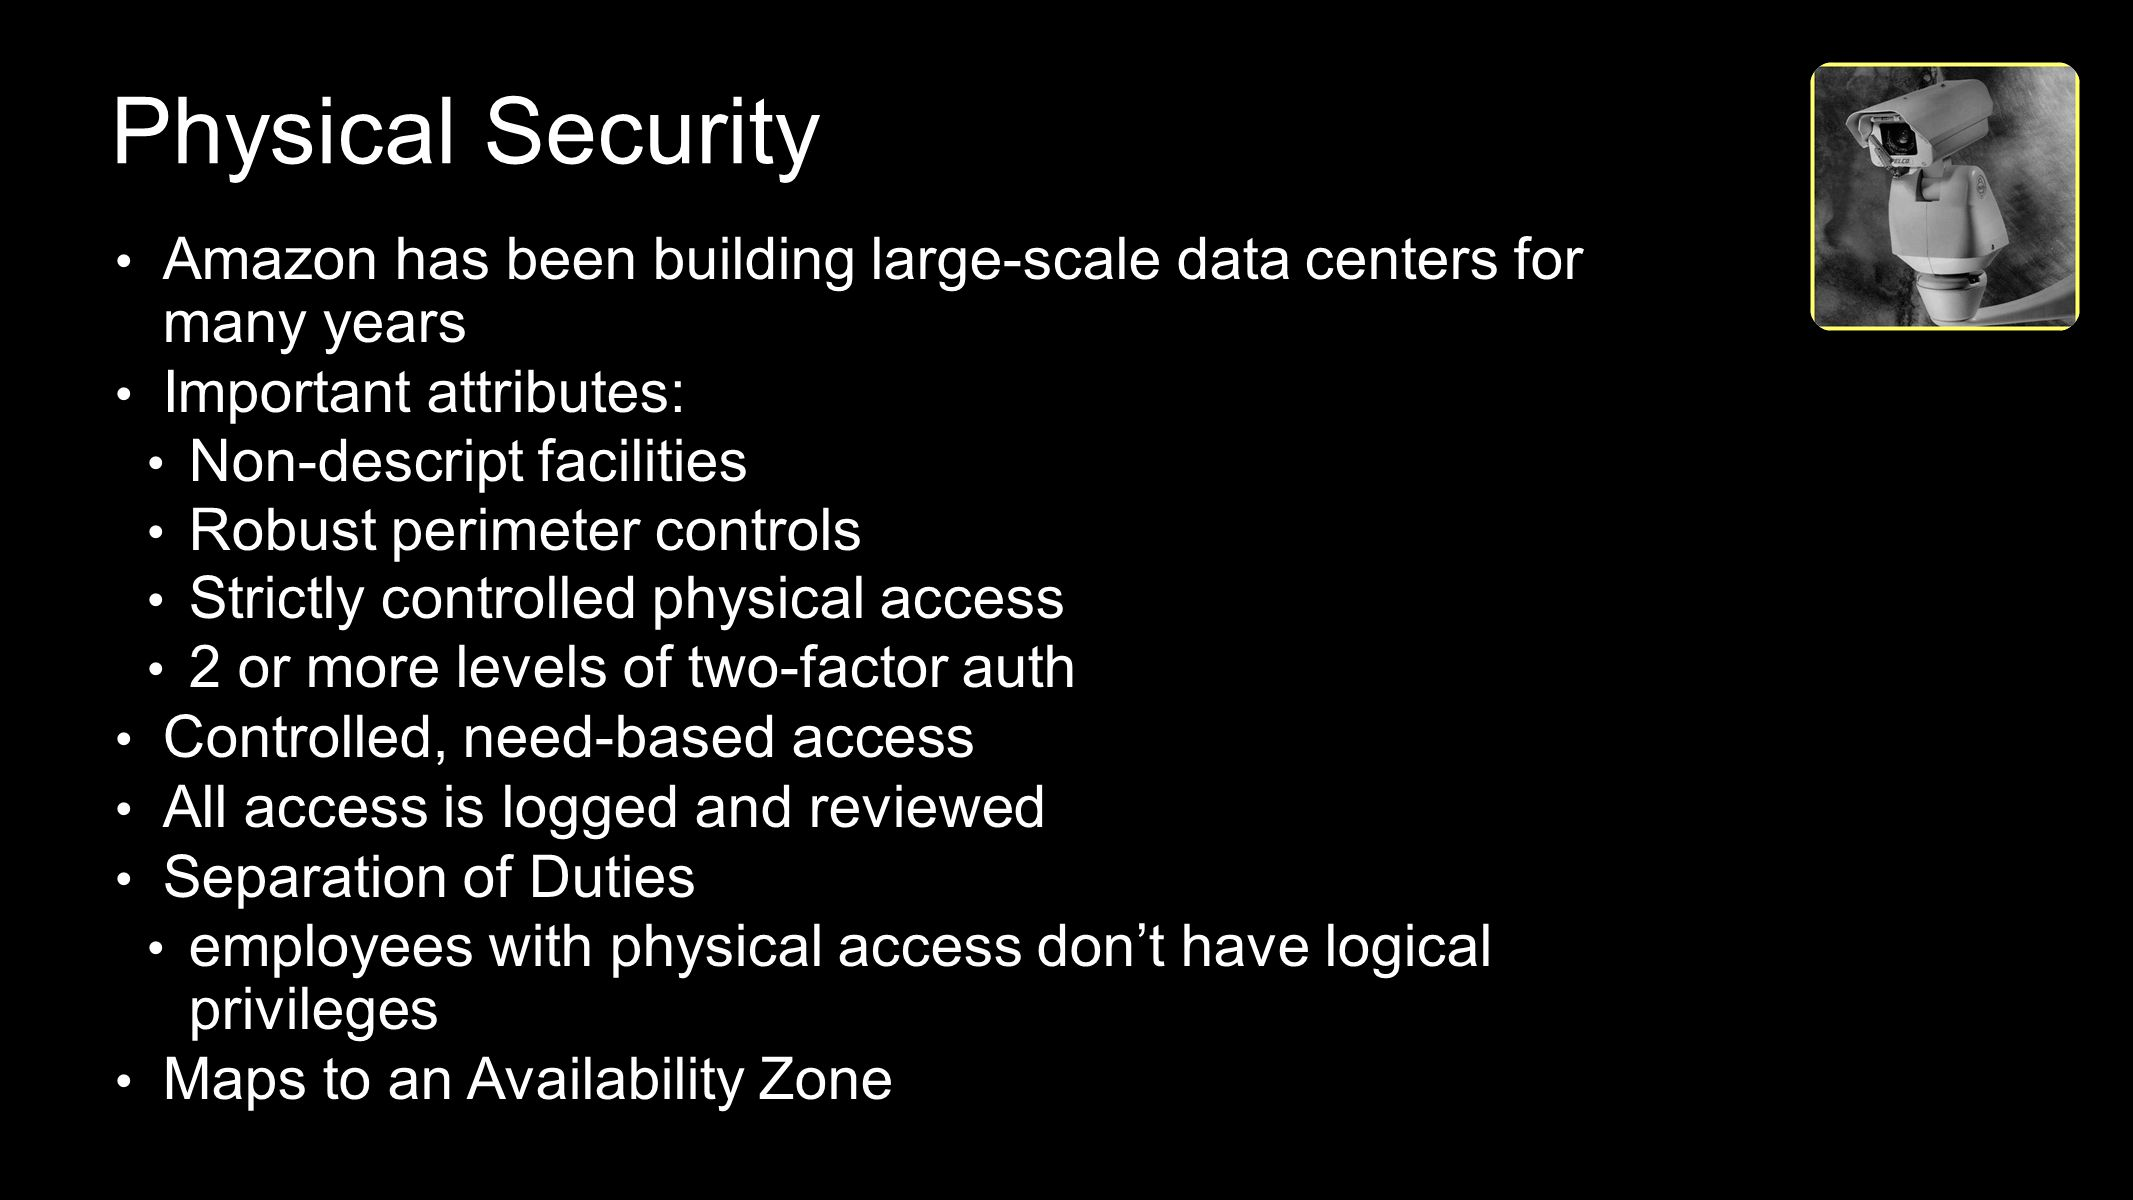 Physical Security Amazon has been building large-scale data centers for many years. Important attributes: